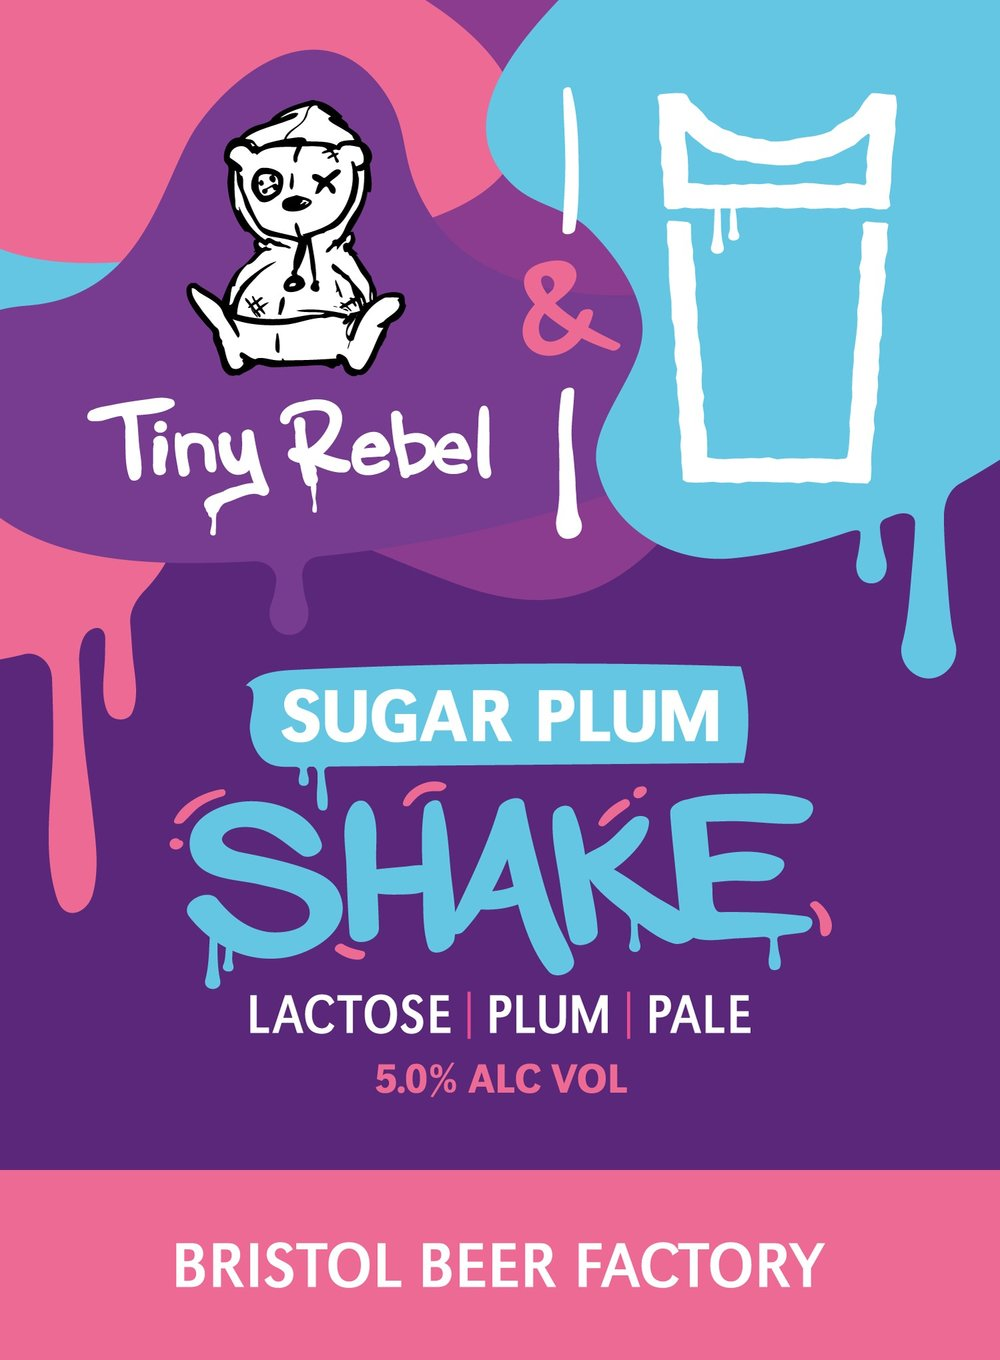 BBF TINY REBEL SUGAR PLUM SHAKE.jpg